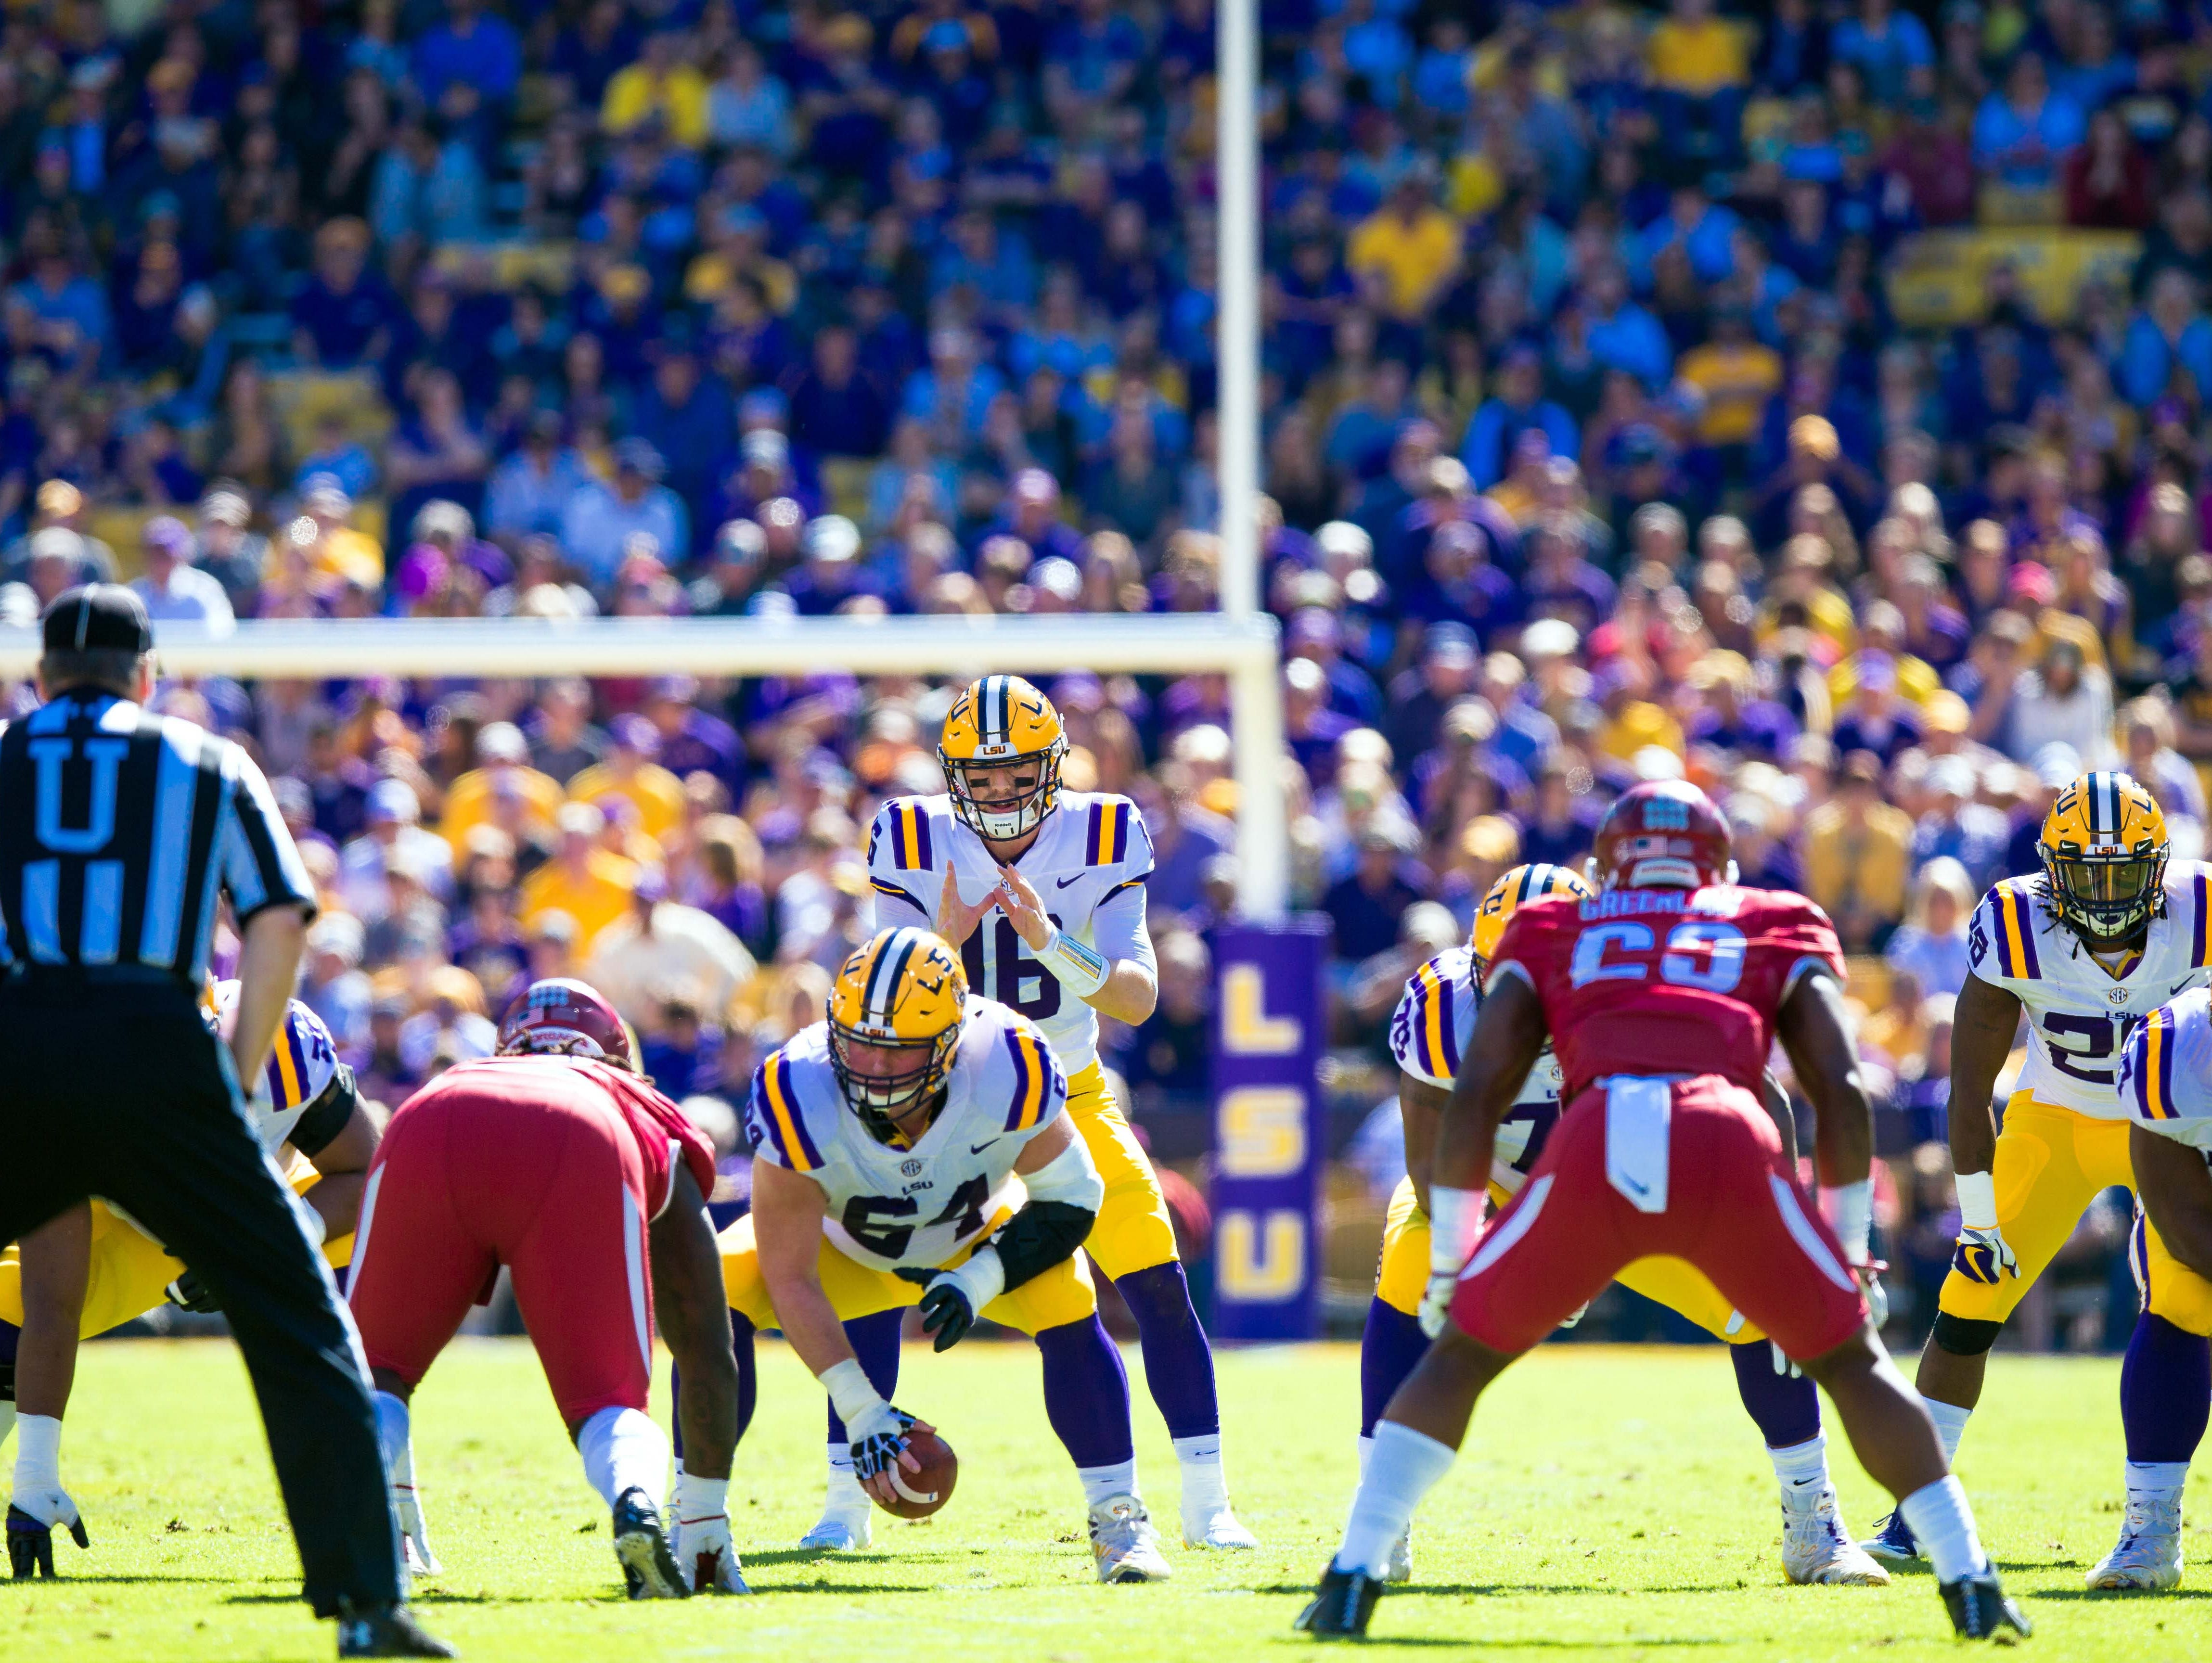 LSU Tigers quarterback Danny Etling (16) calls for the ball from center Will Clapp (64) against Arkansas Razorbacks during the first quarter at Tiger Stadium.